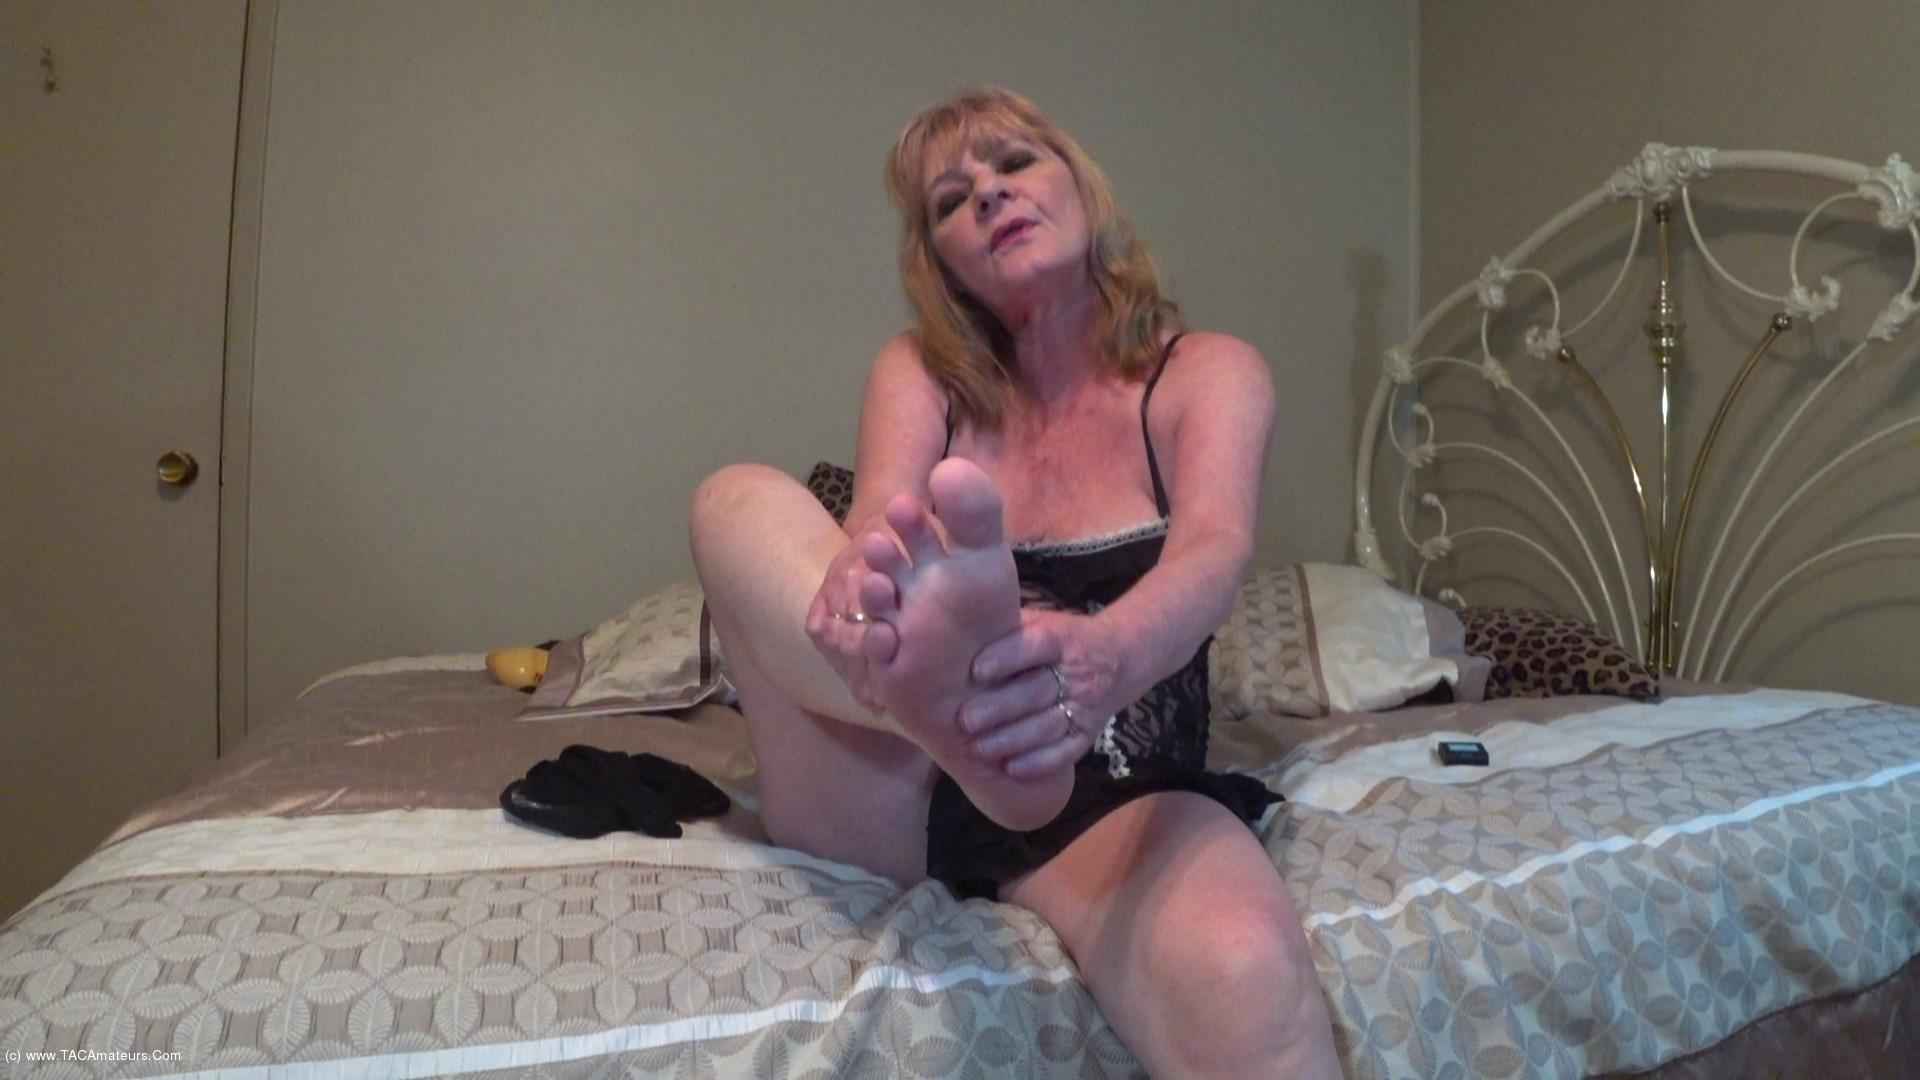 CougarBabeJolee - Get Intimate With My Pretty Feet scene 3